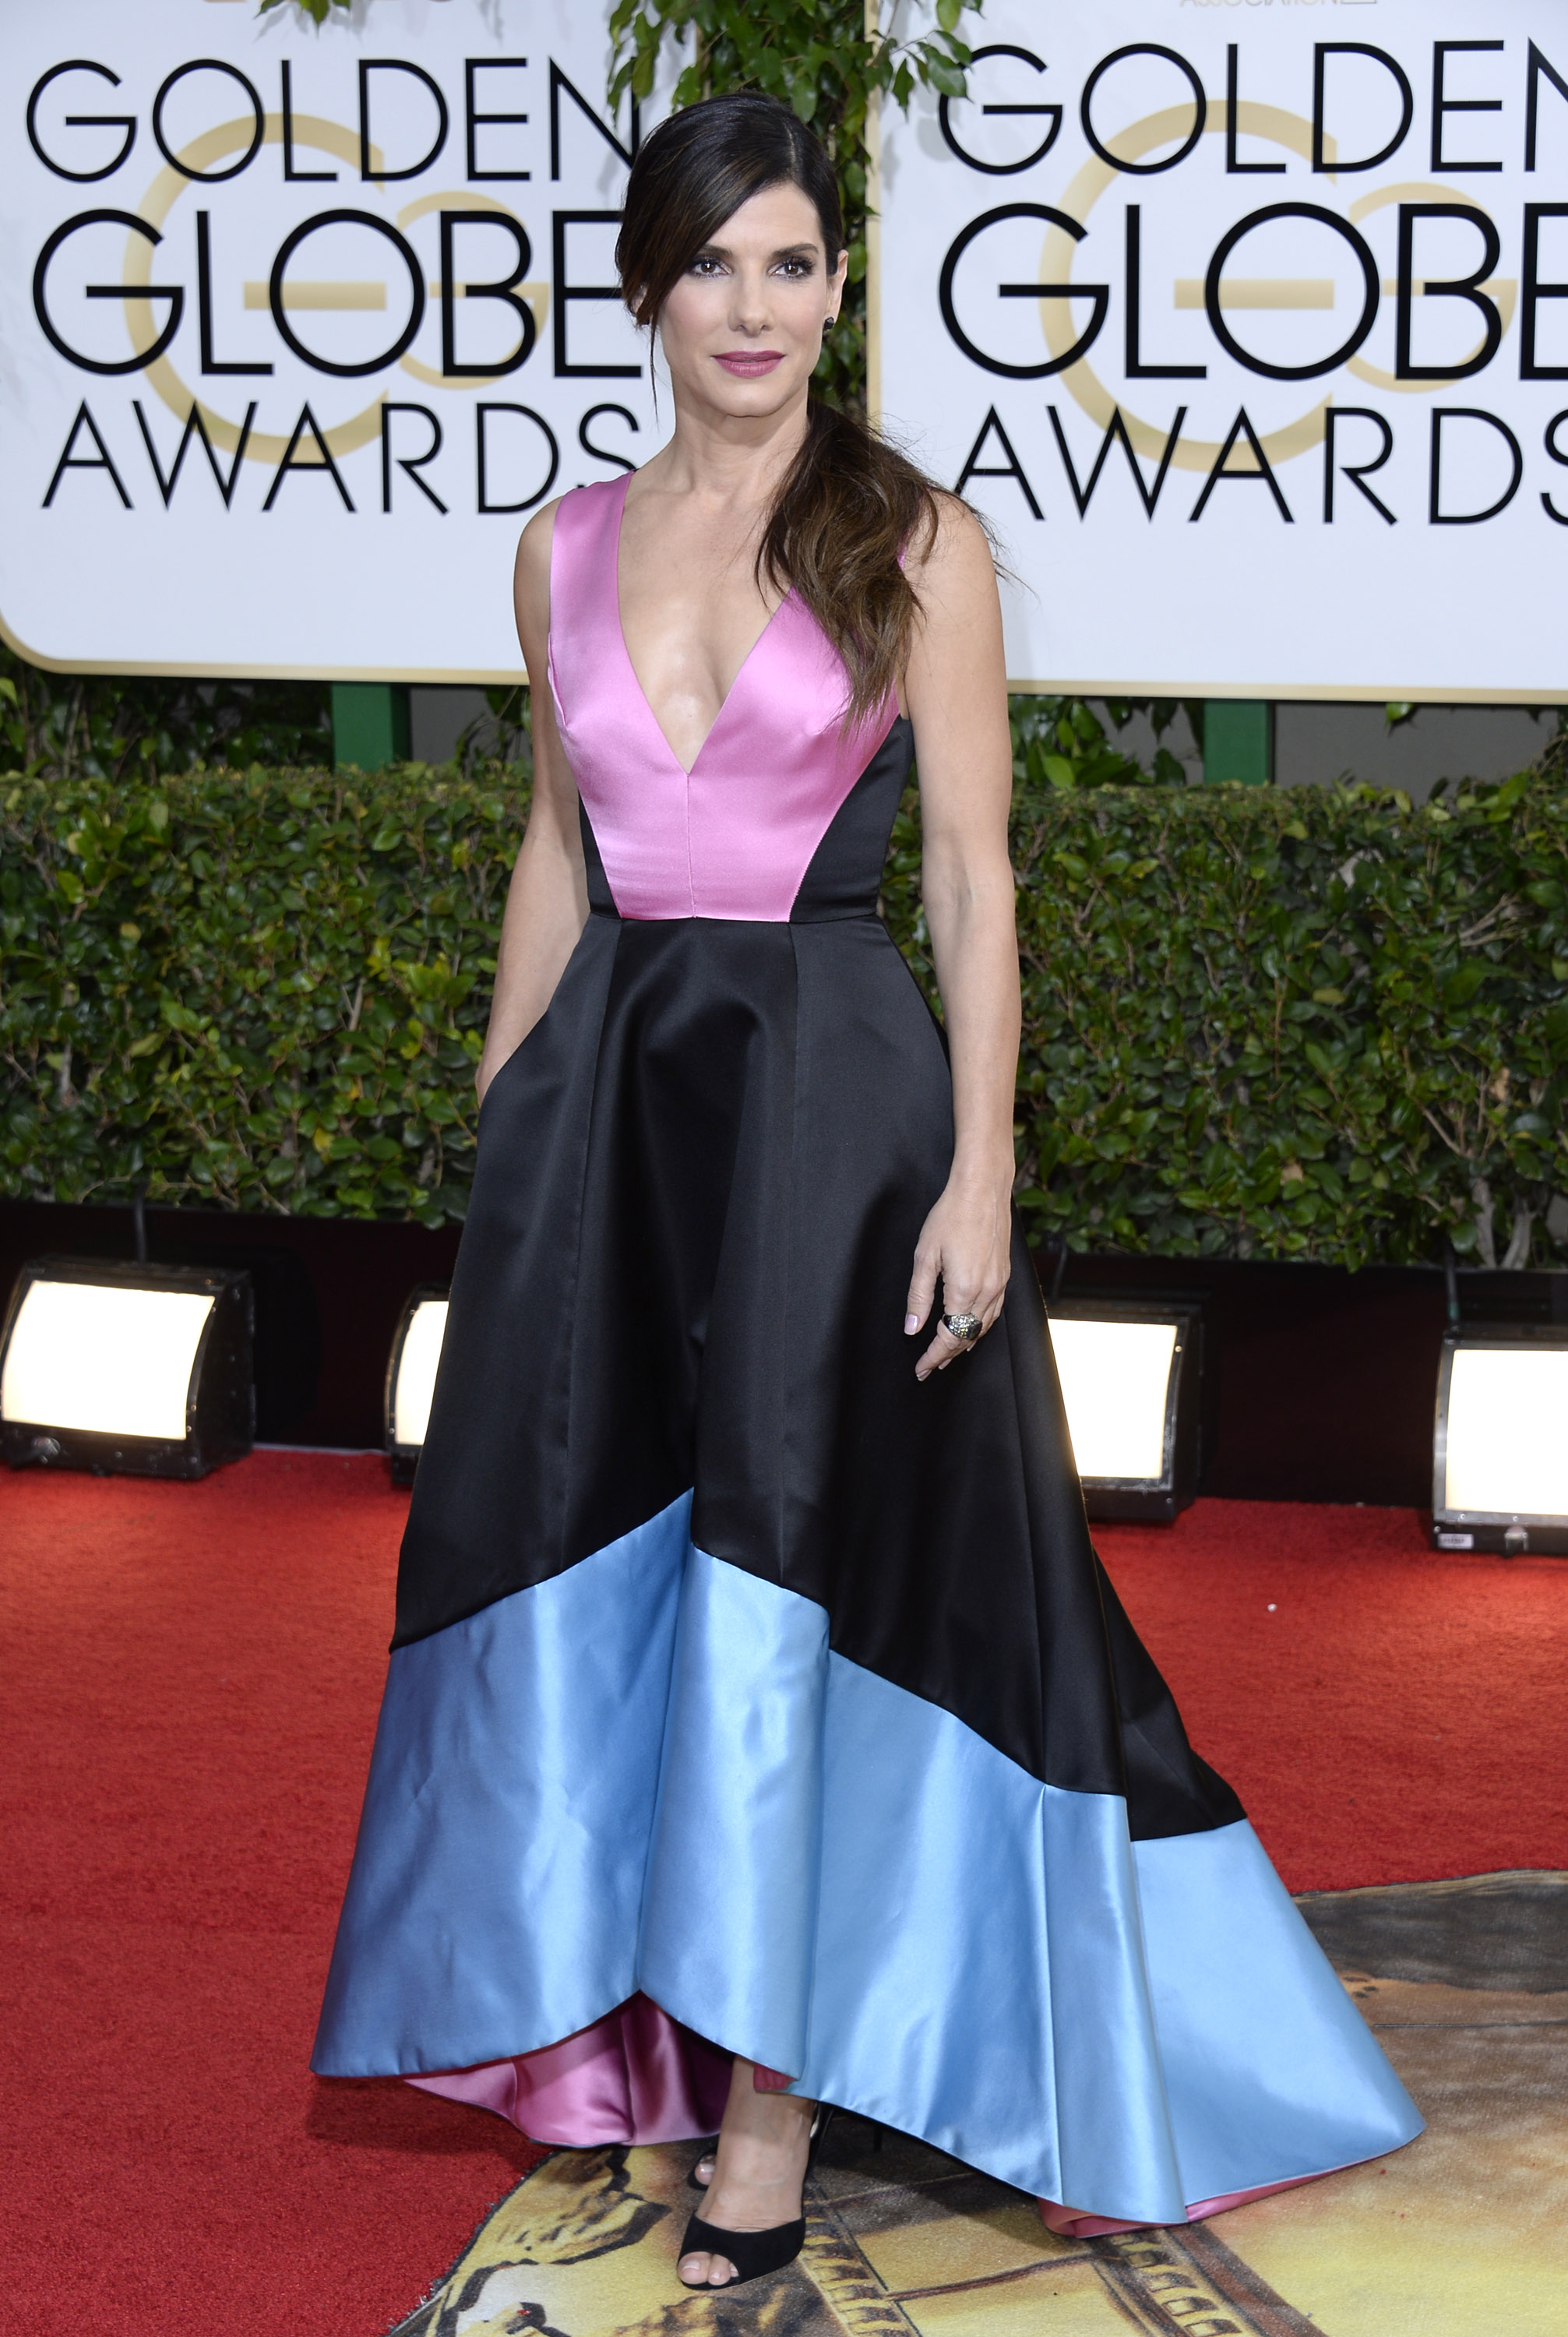 Runway to red carpet: Golden Globes 2014